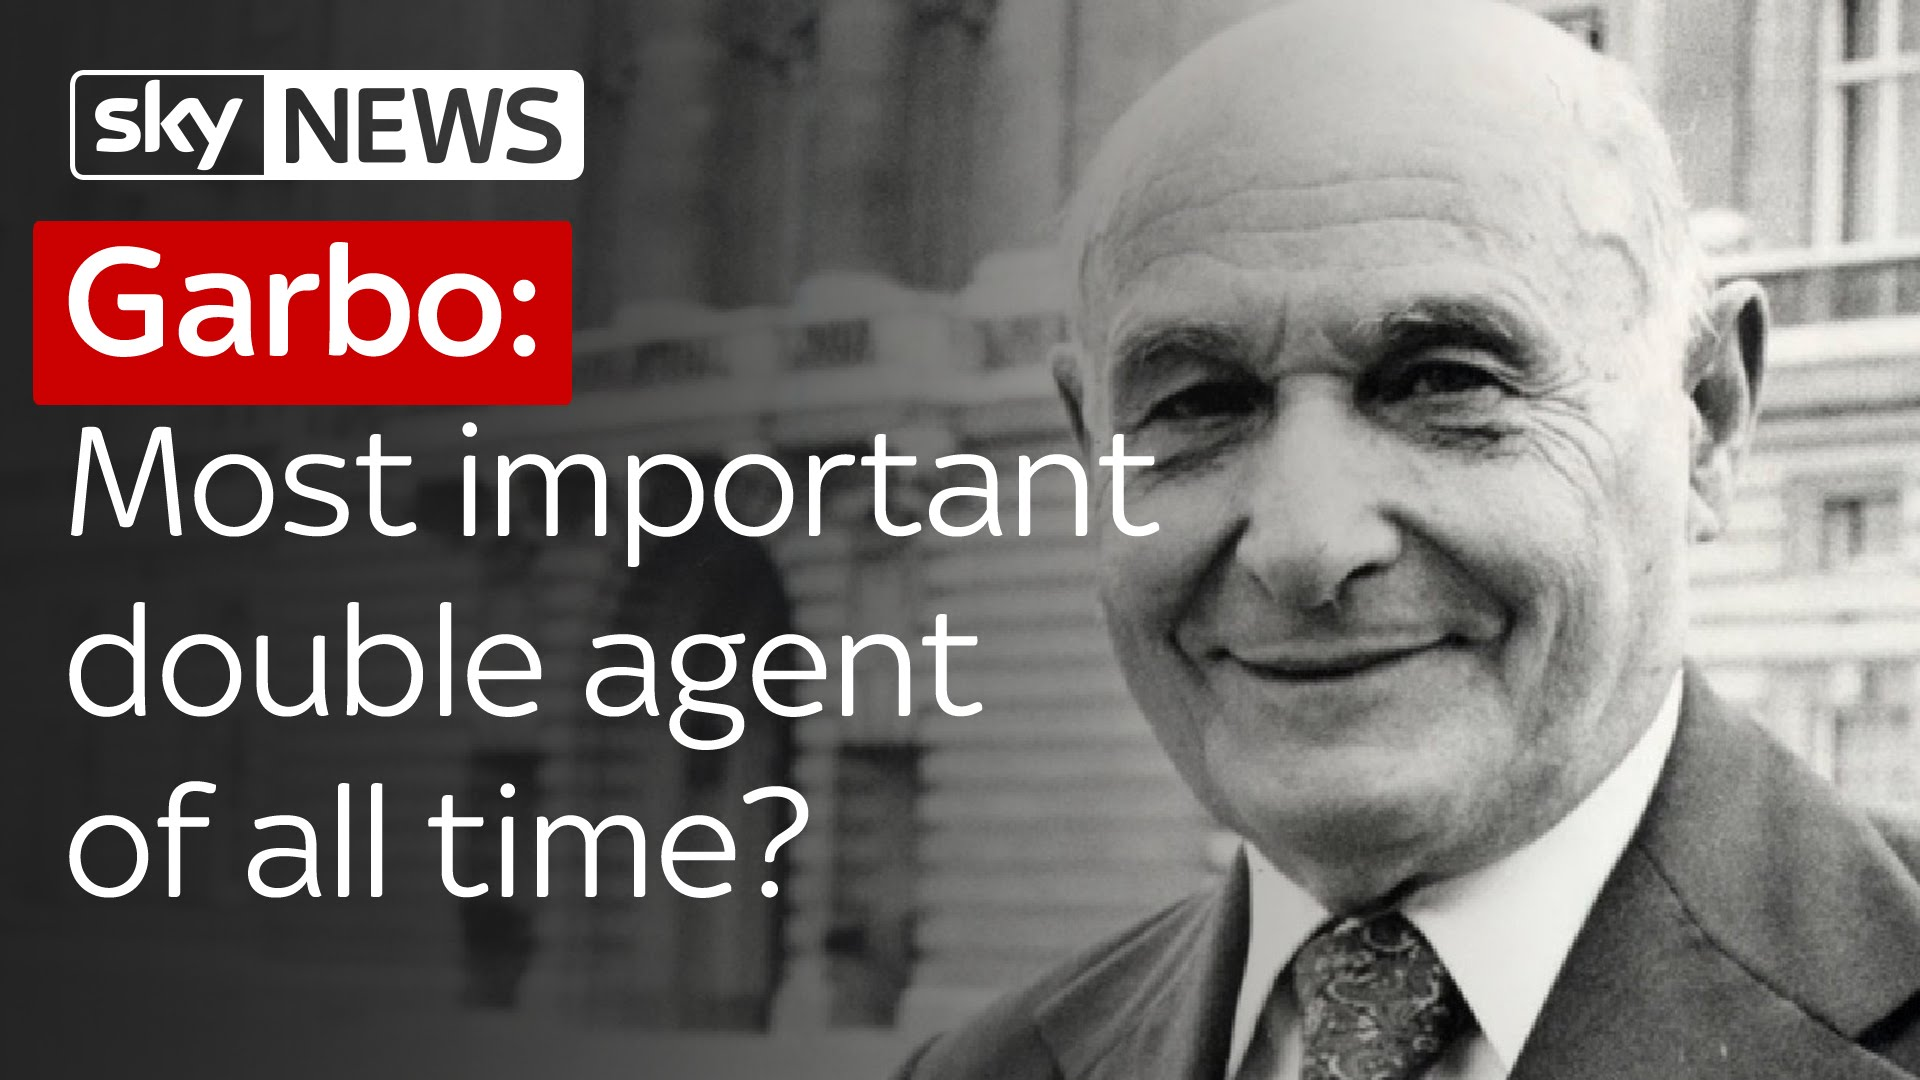 Garbo: Most important double agent of all time? 8